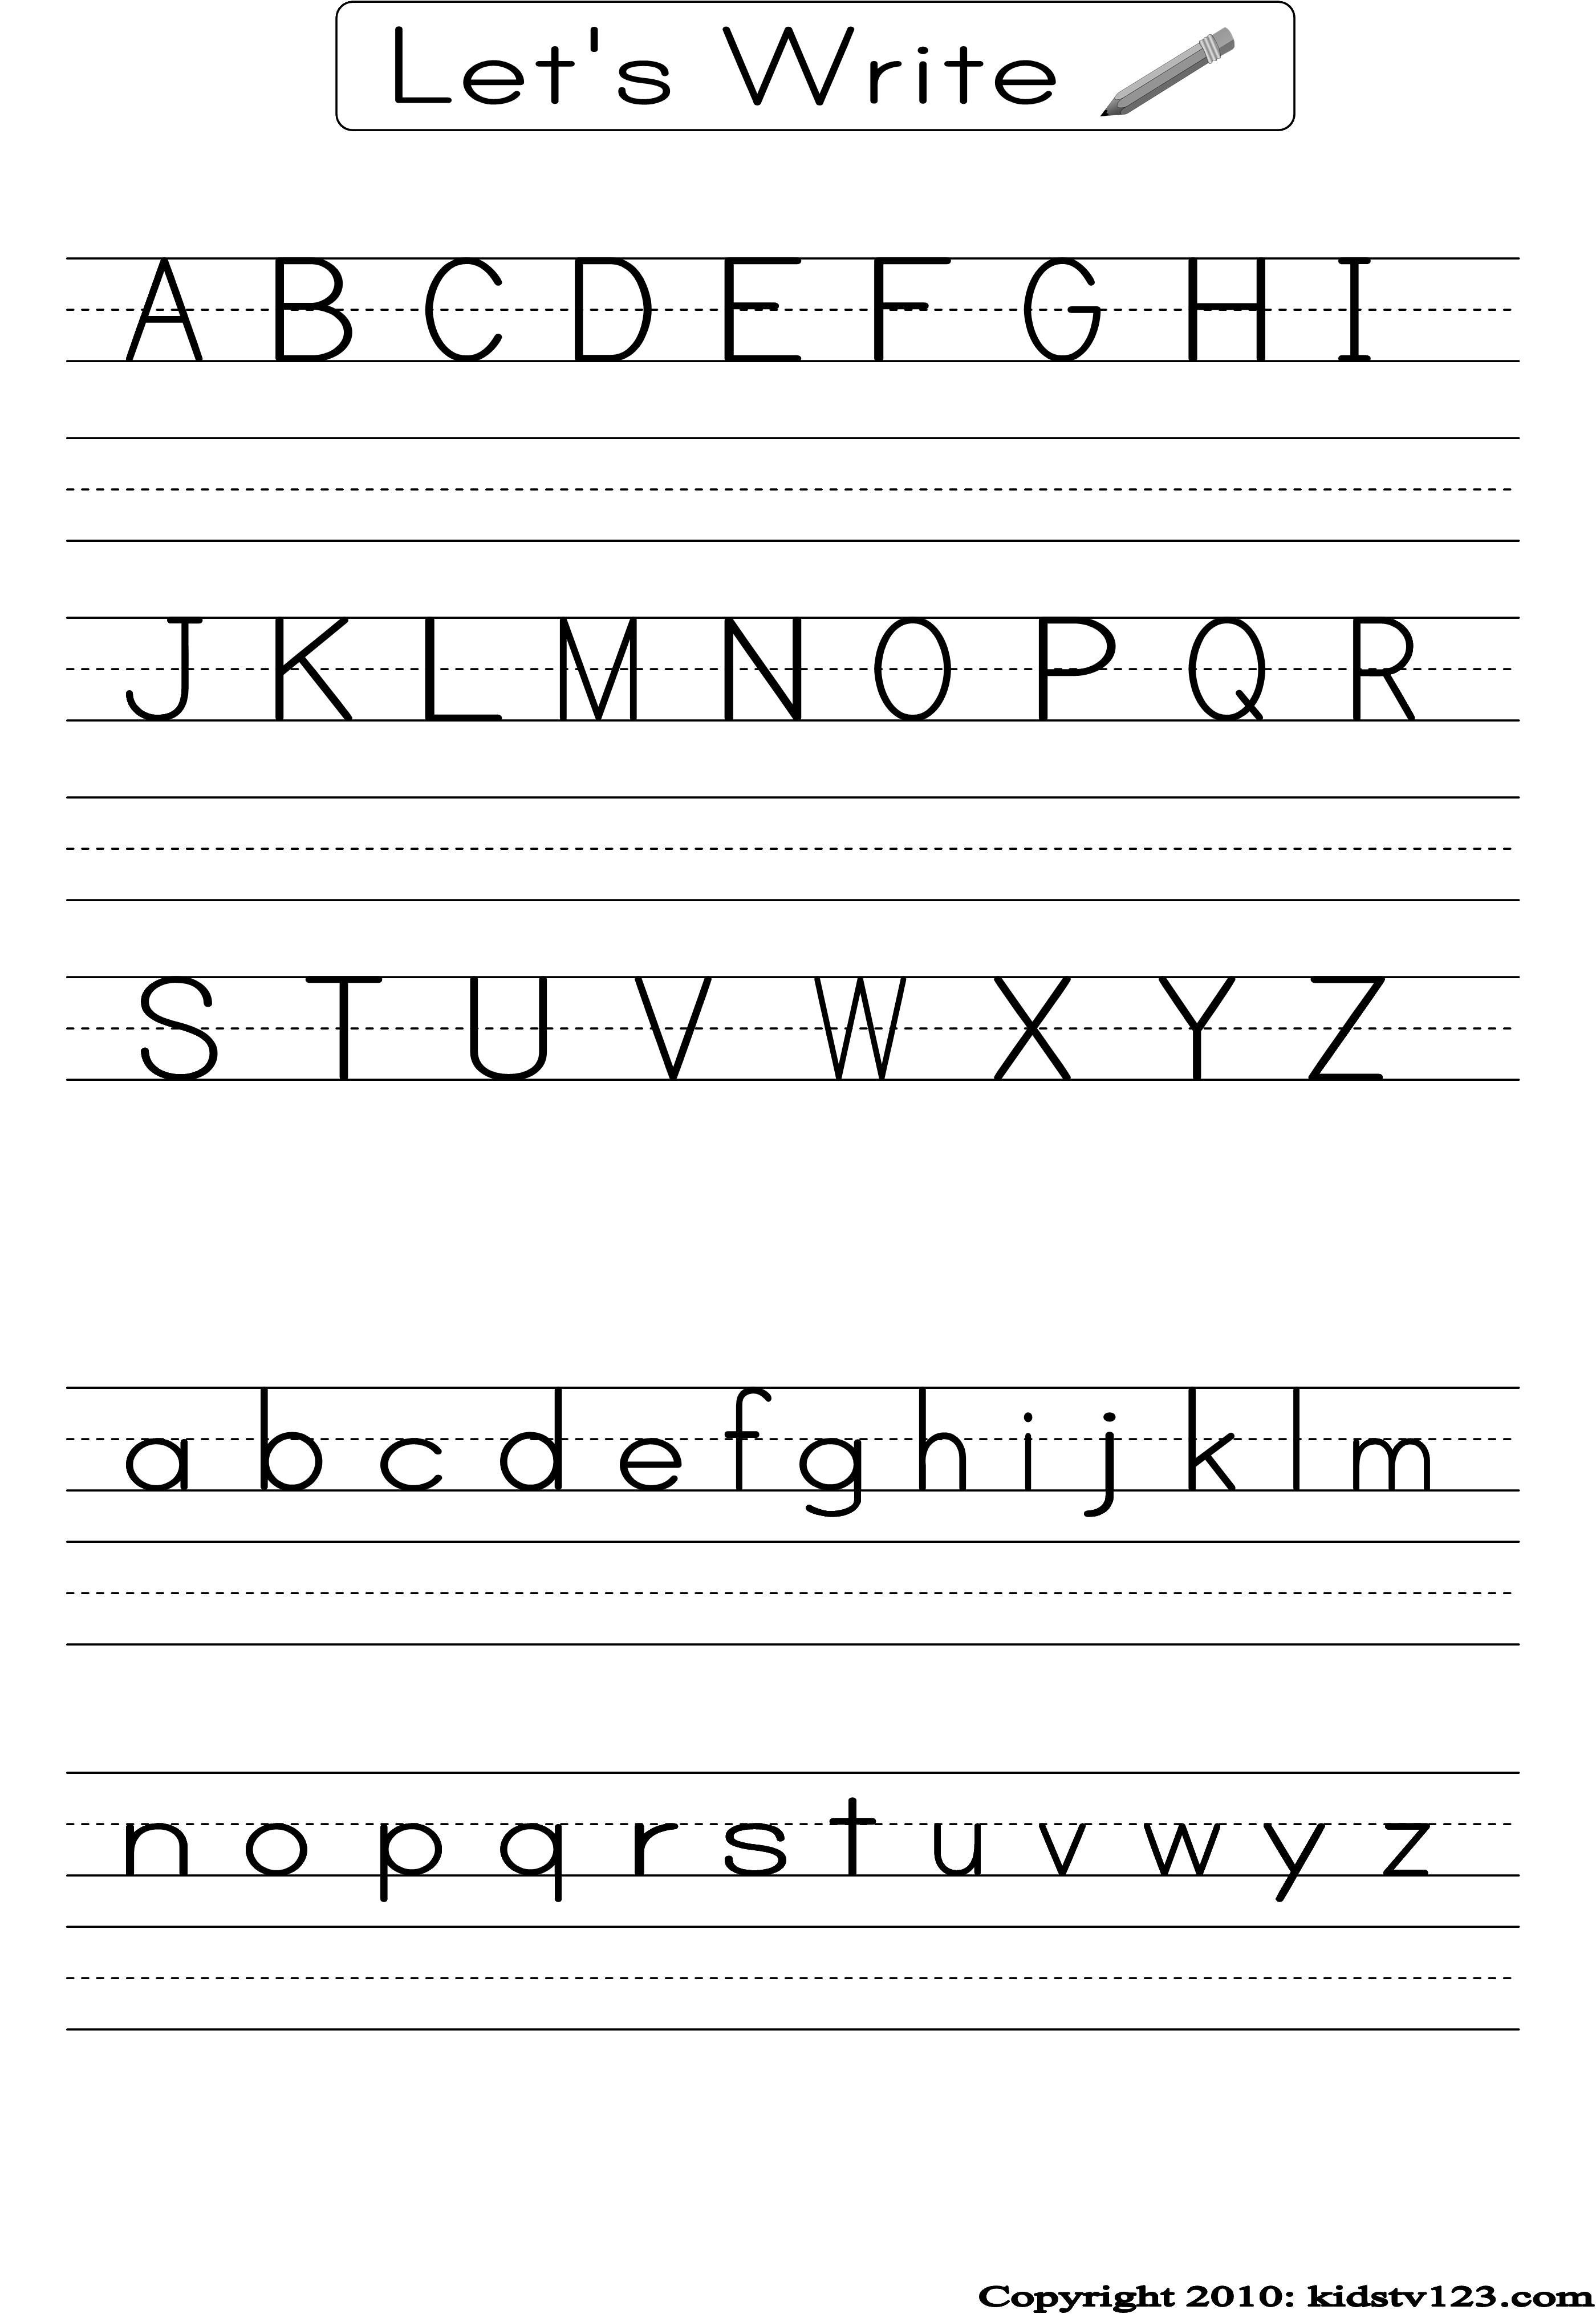 small resolution of 897502e4311627d8b756184483c0d2ea.png (2799×4057)   Alphabet writing  practice